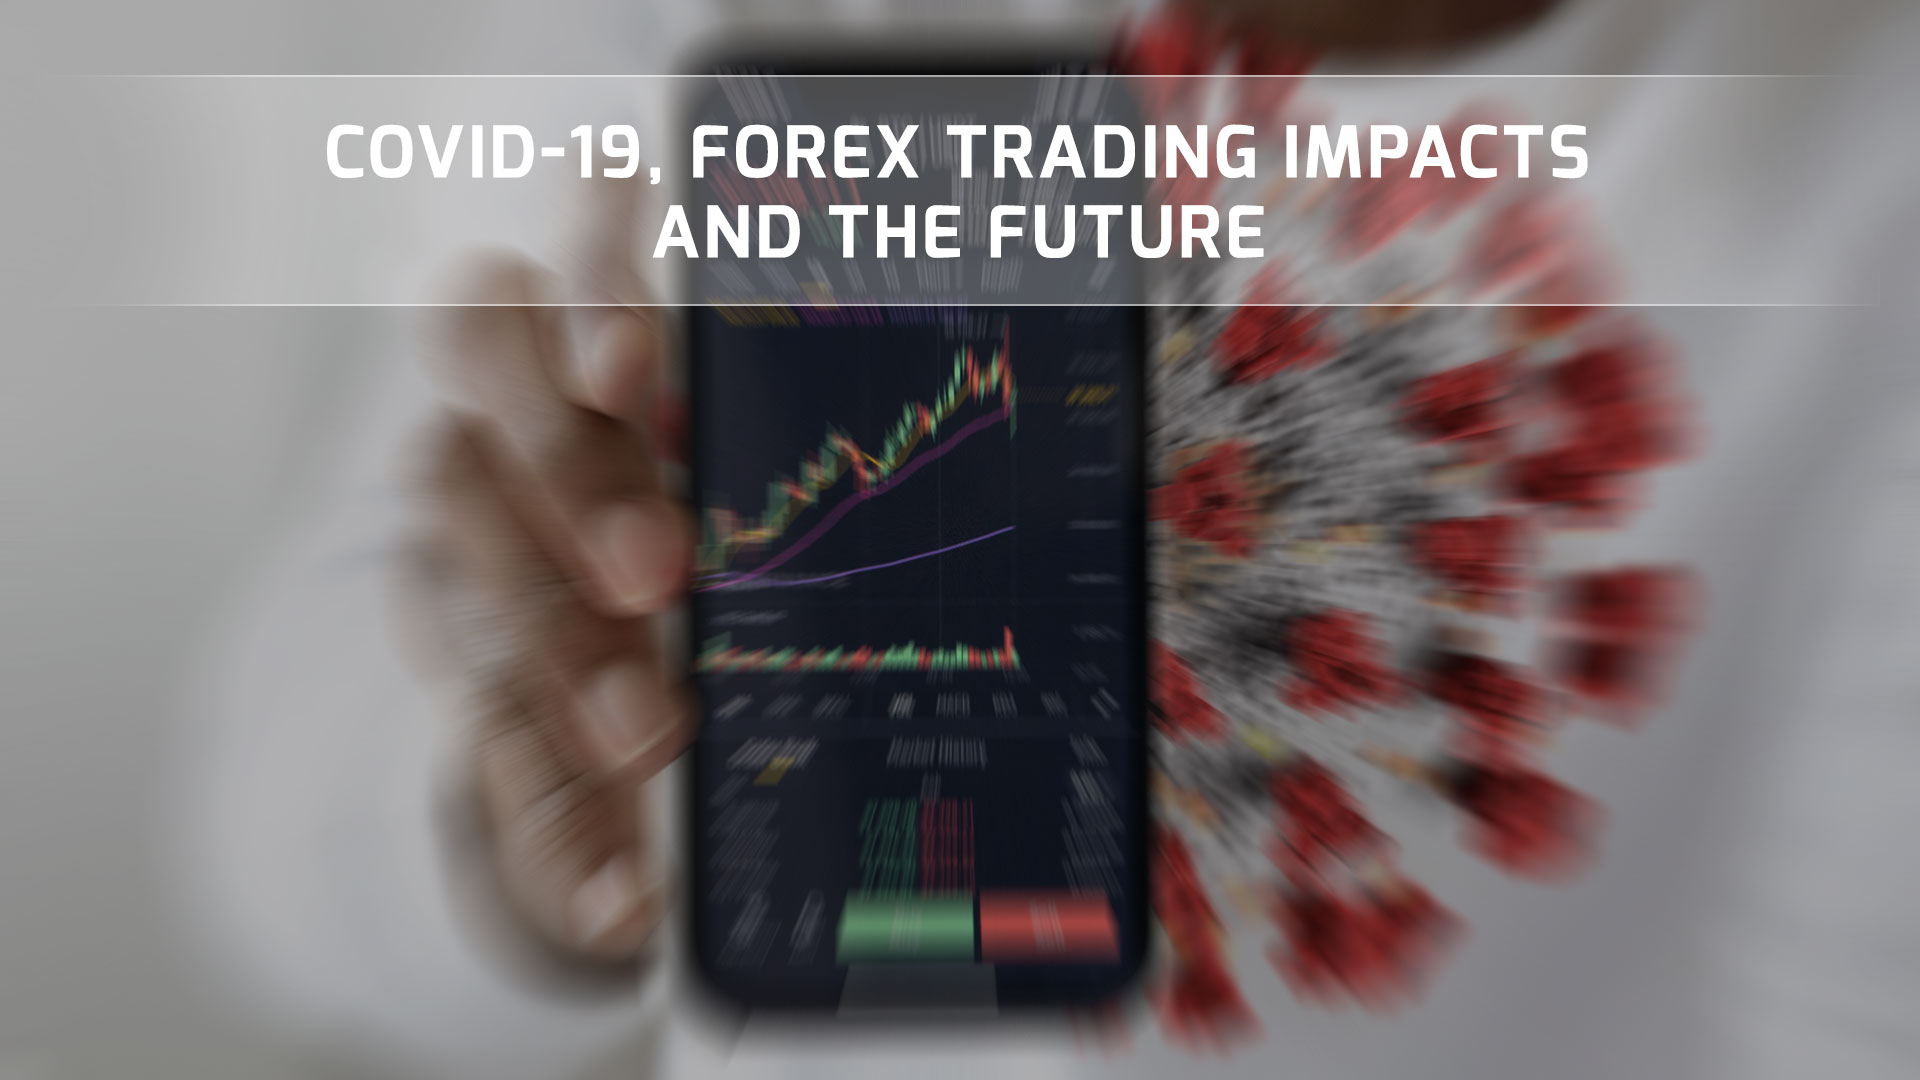 COVID-19 and Forex Trading: Impacts and the Future